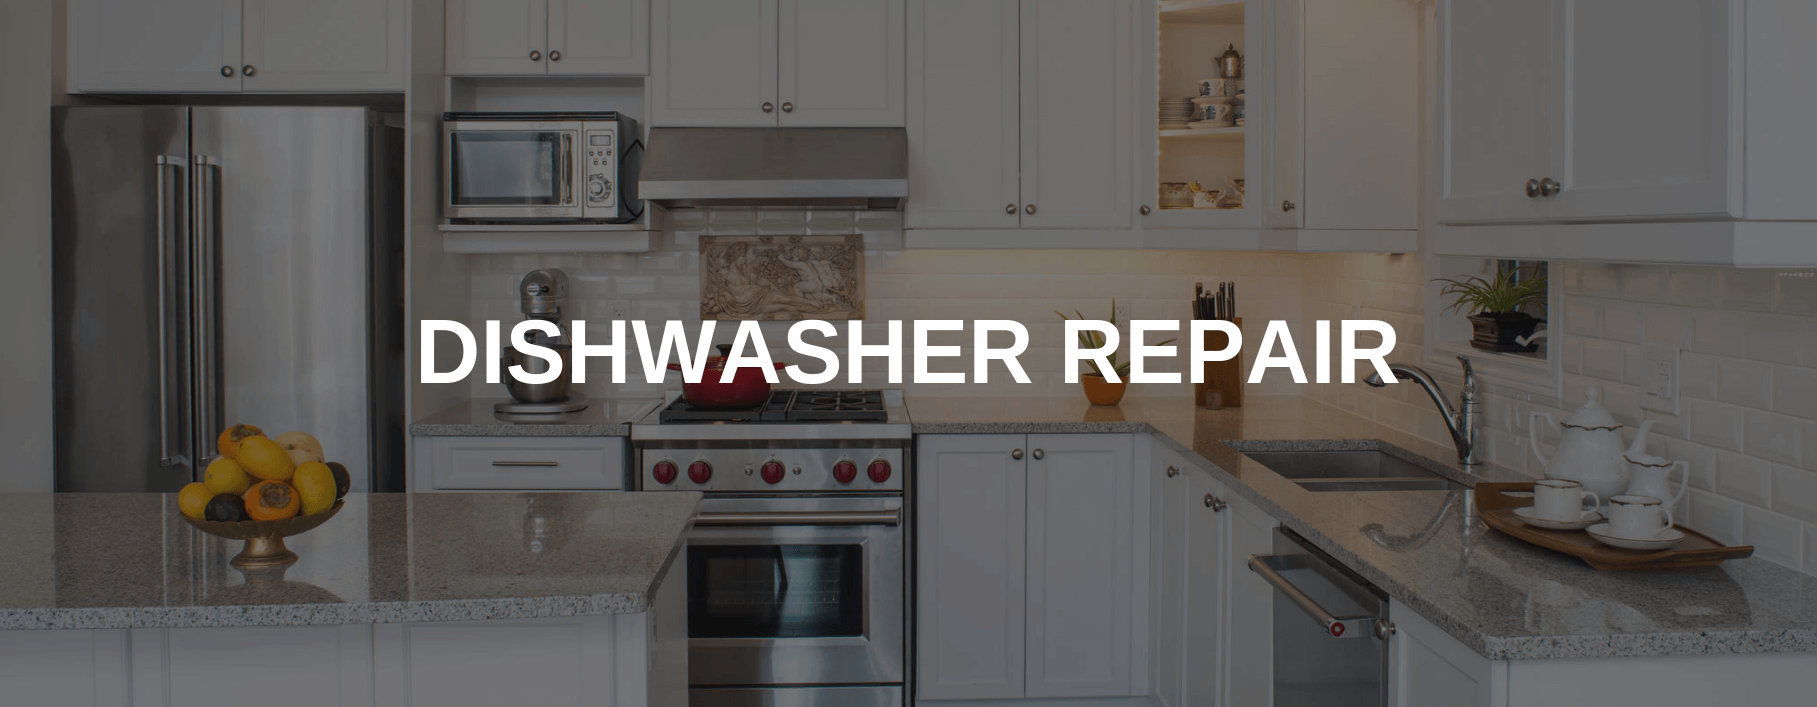 dishwasher repair garland